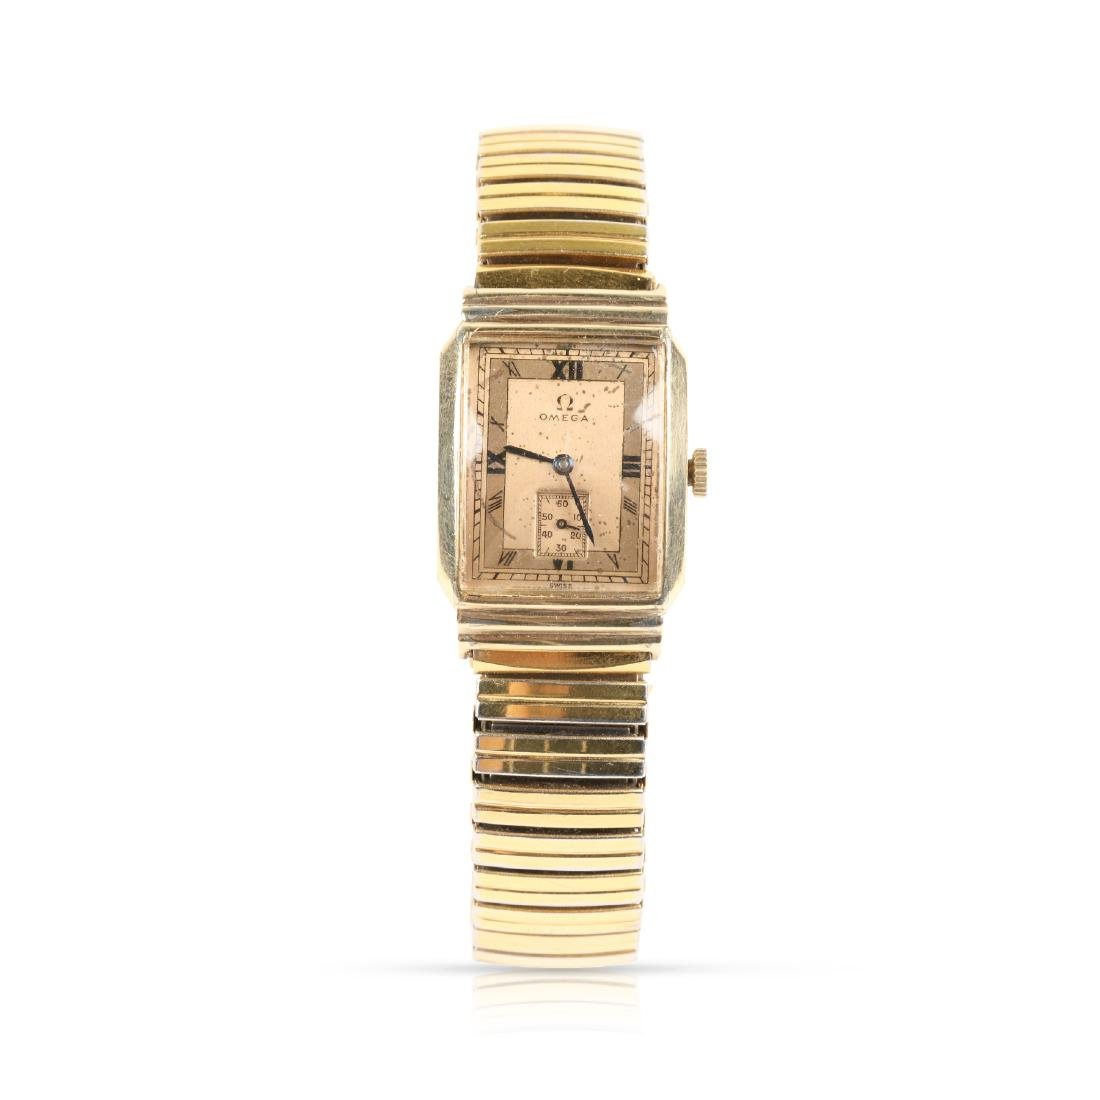 Omega, 1940s Dress Wristwatch